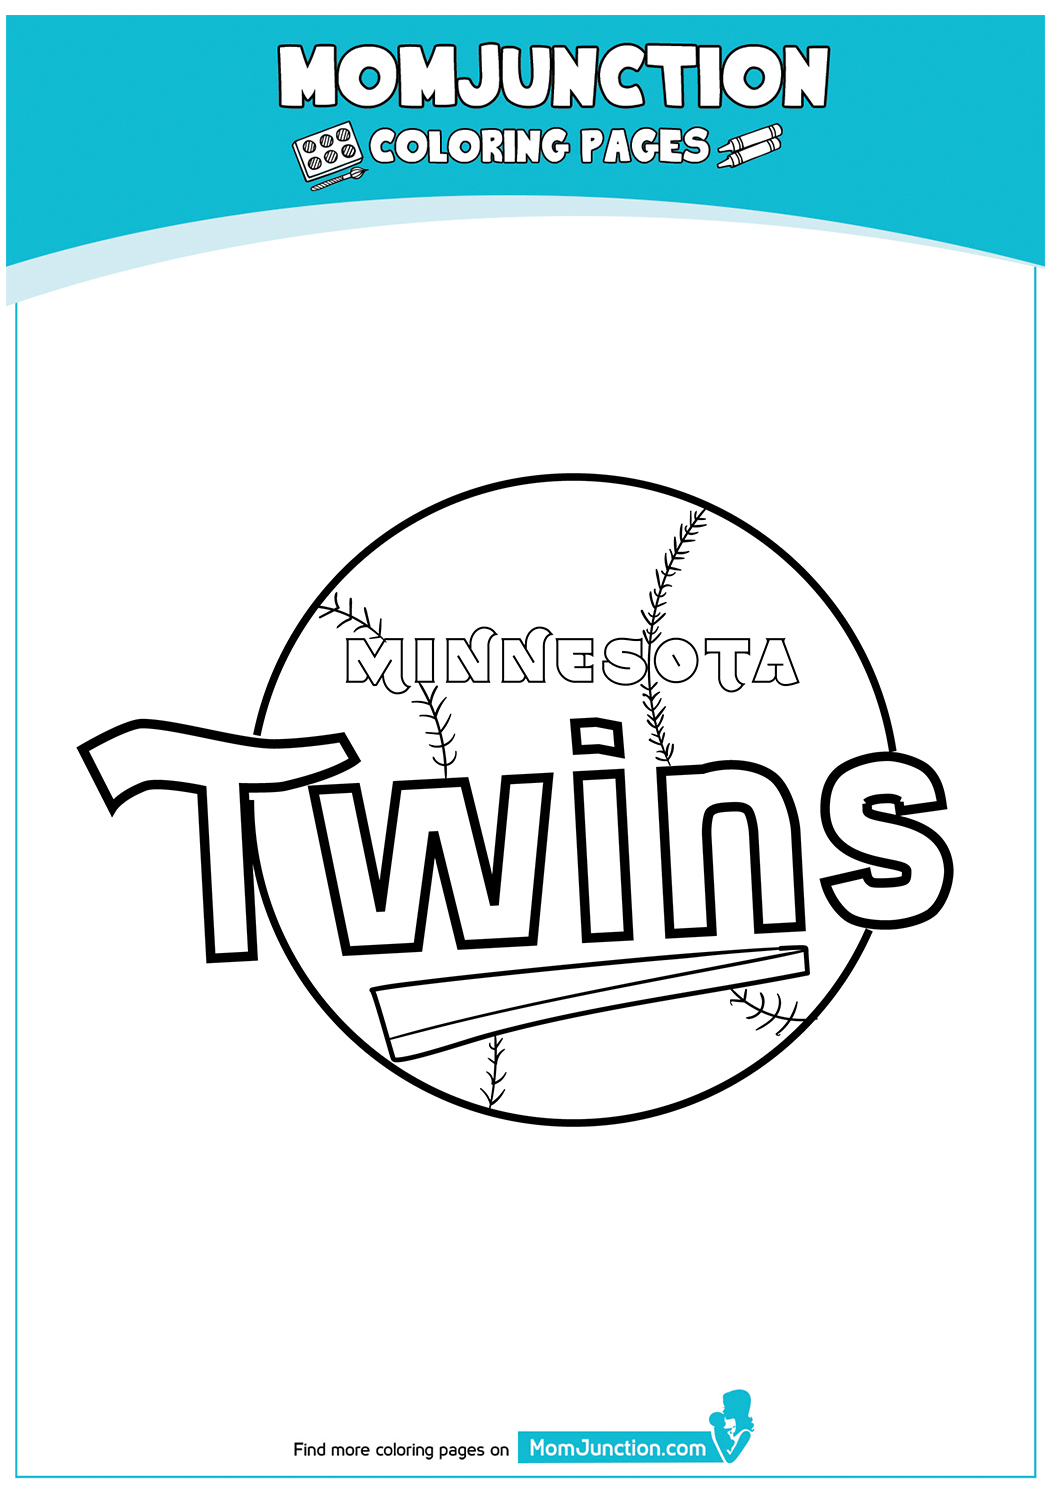 Minnesota-Twins-Logo-17